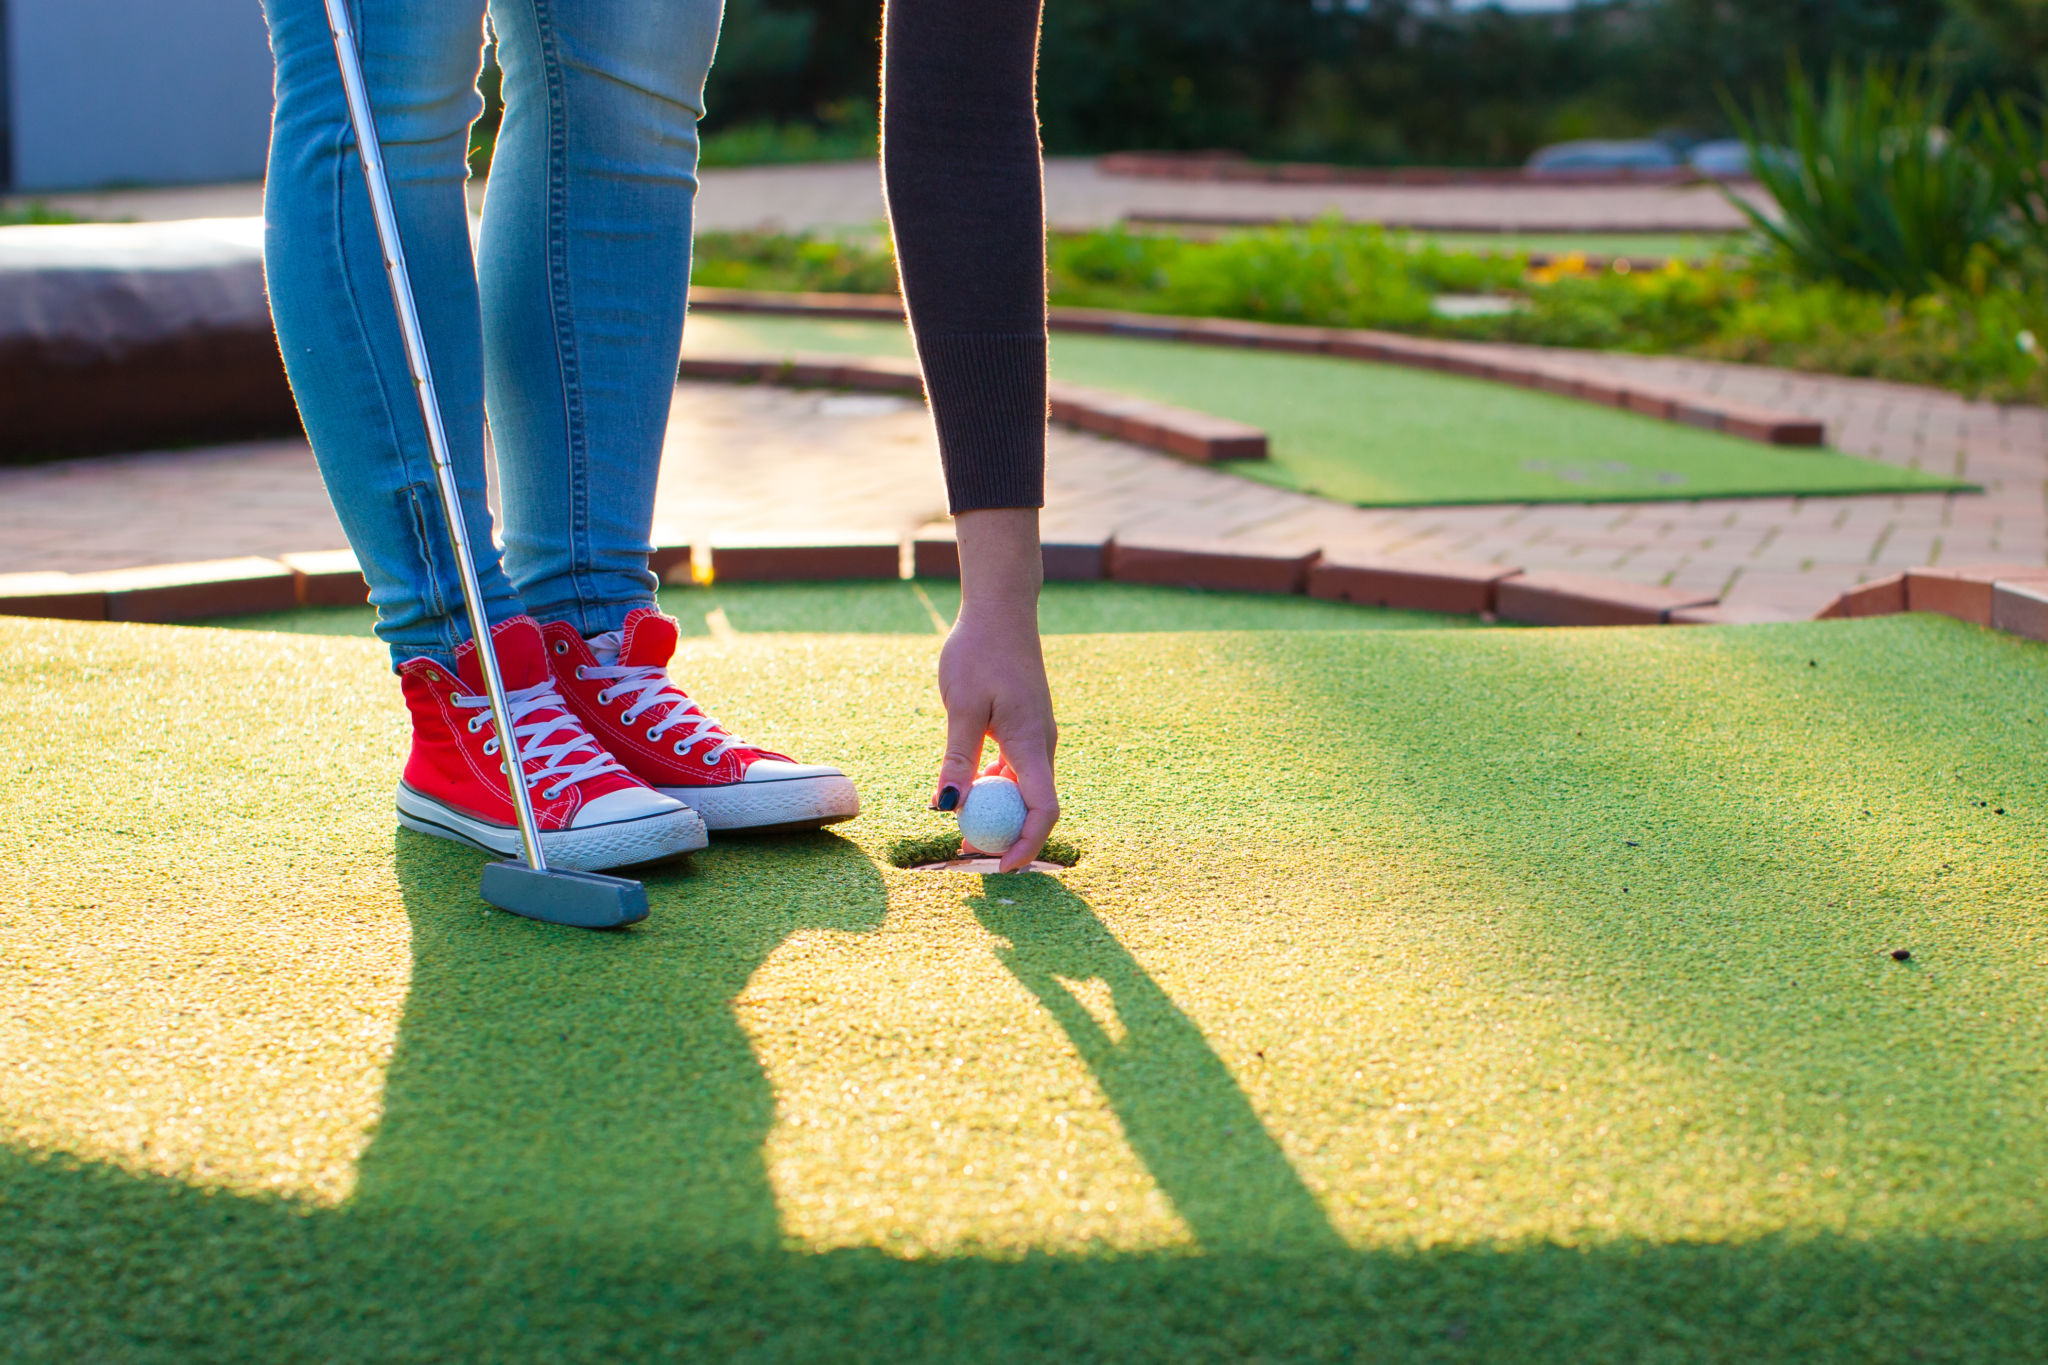 woman's arm and legs as she picks up a golf ball at bay area mini golf